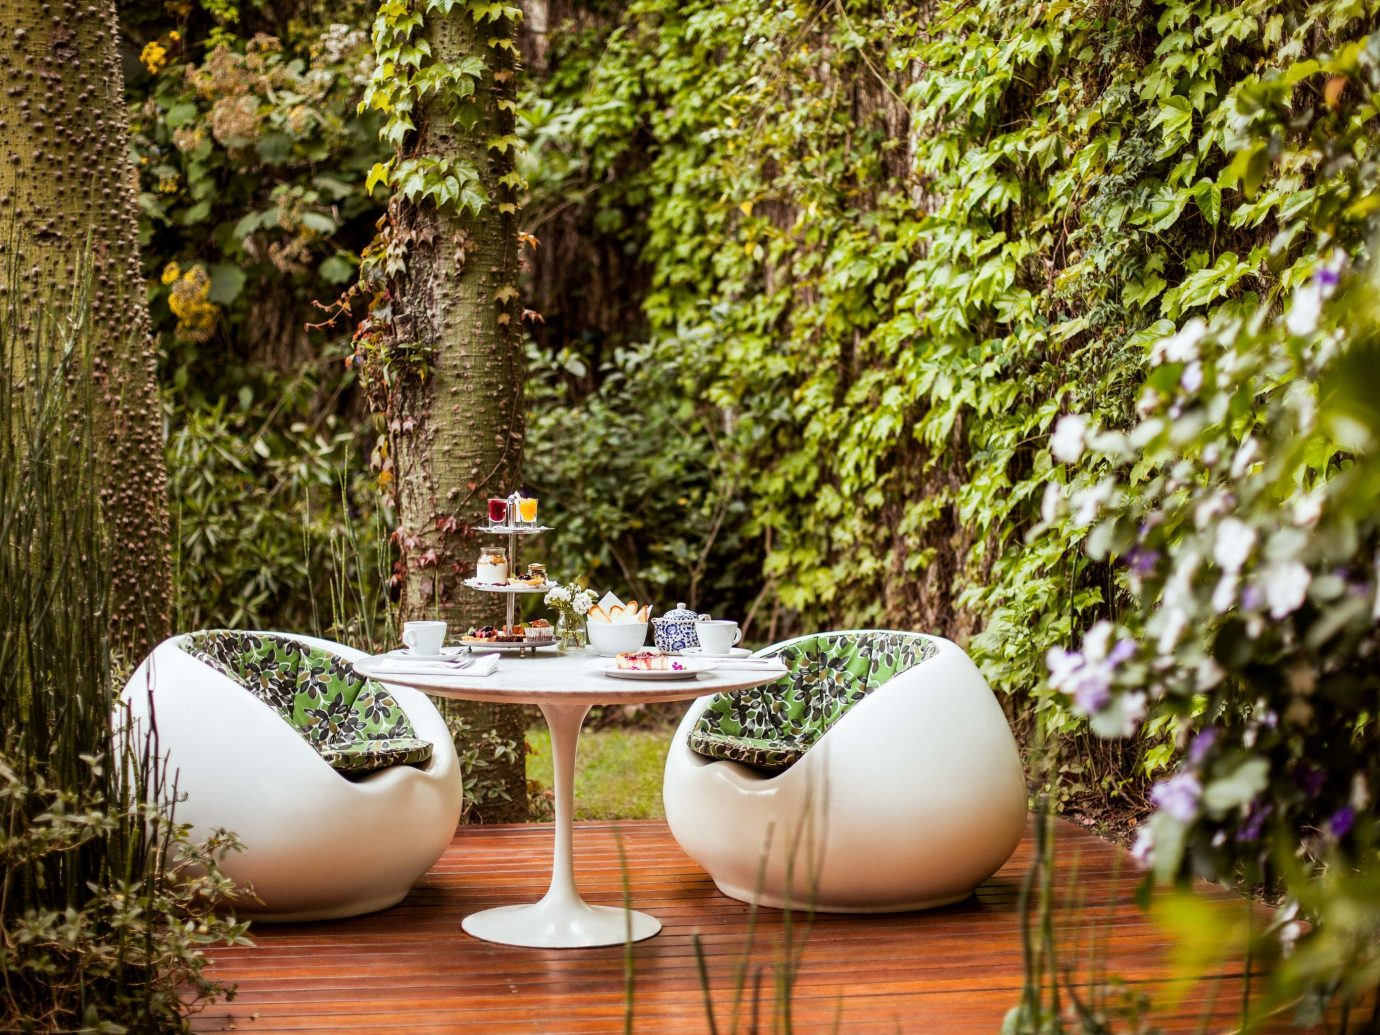 Boutique Hotels Luxury Travel tree outdoor Garden plant leaf table grass backyard outdoor structure landscaping area Forest wooded